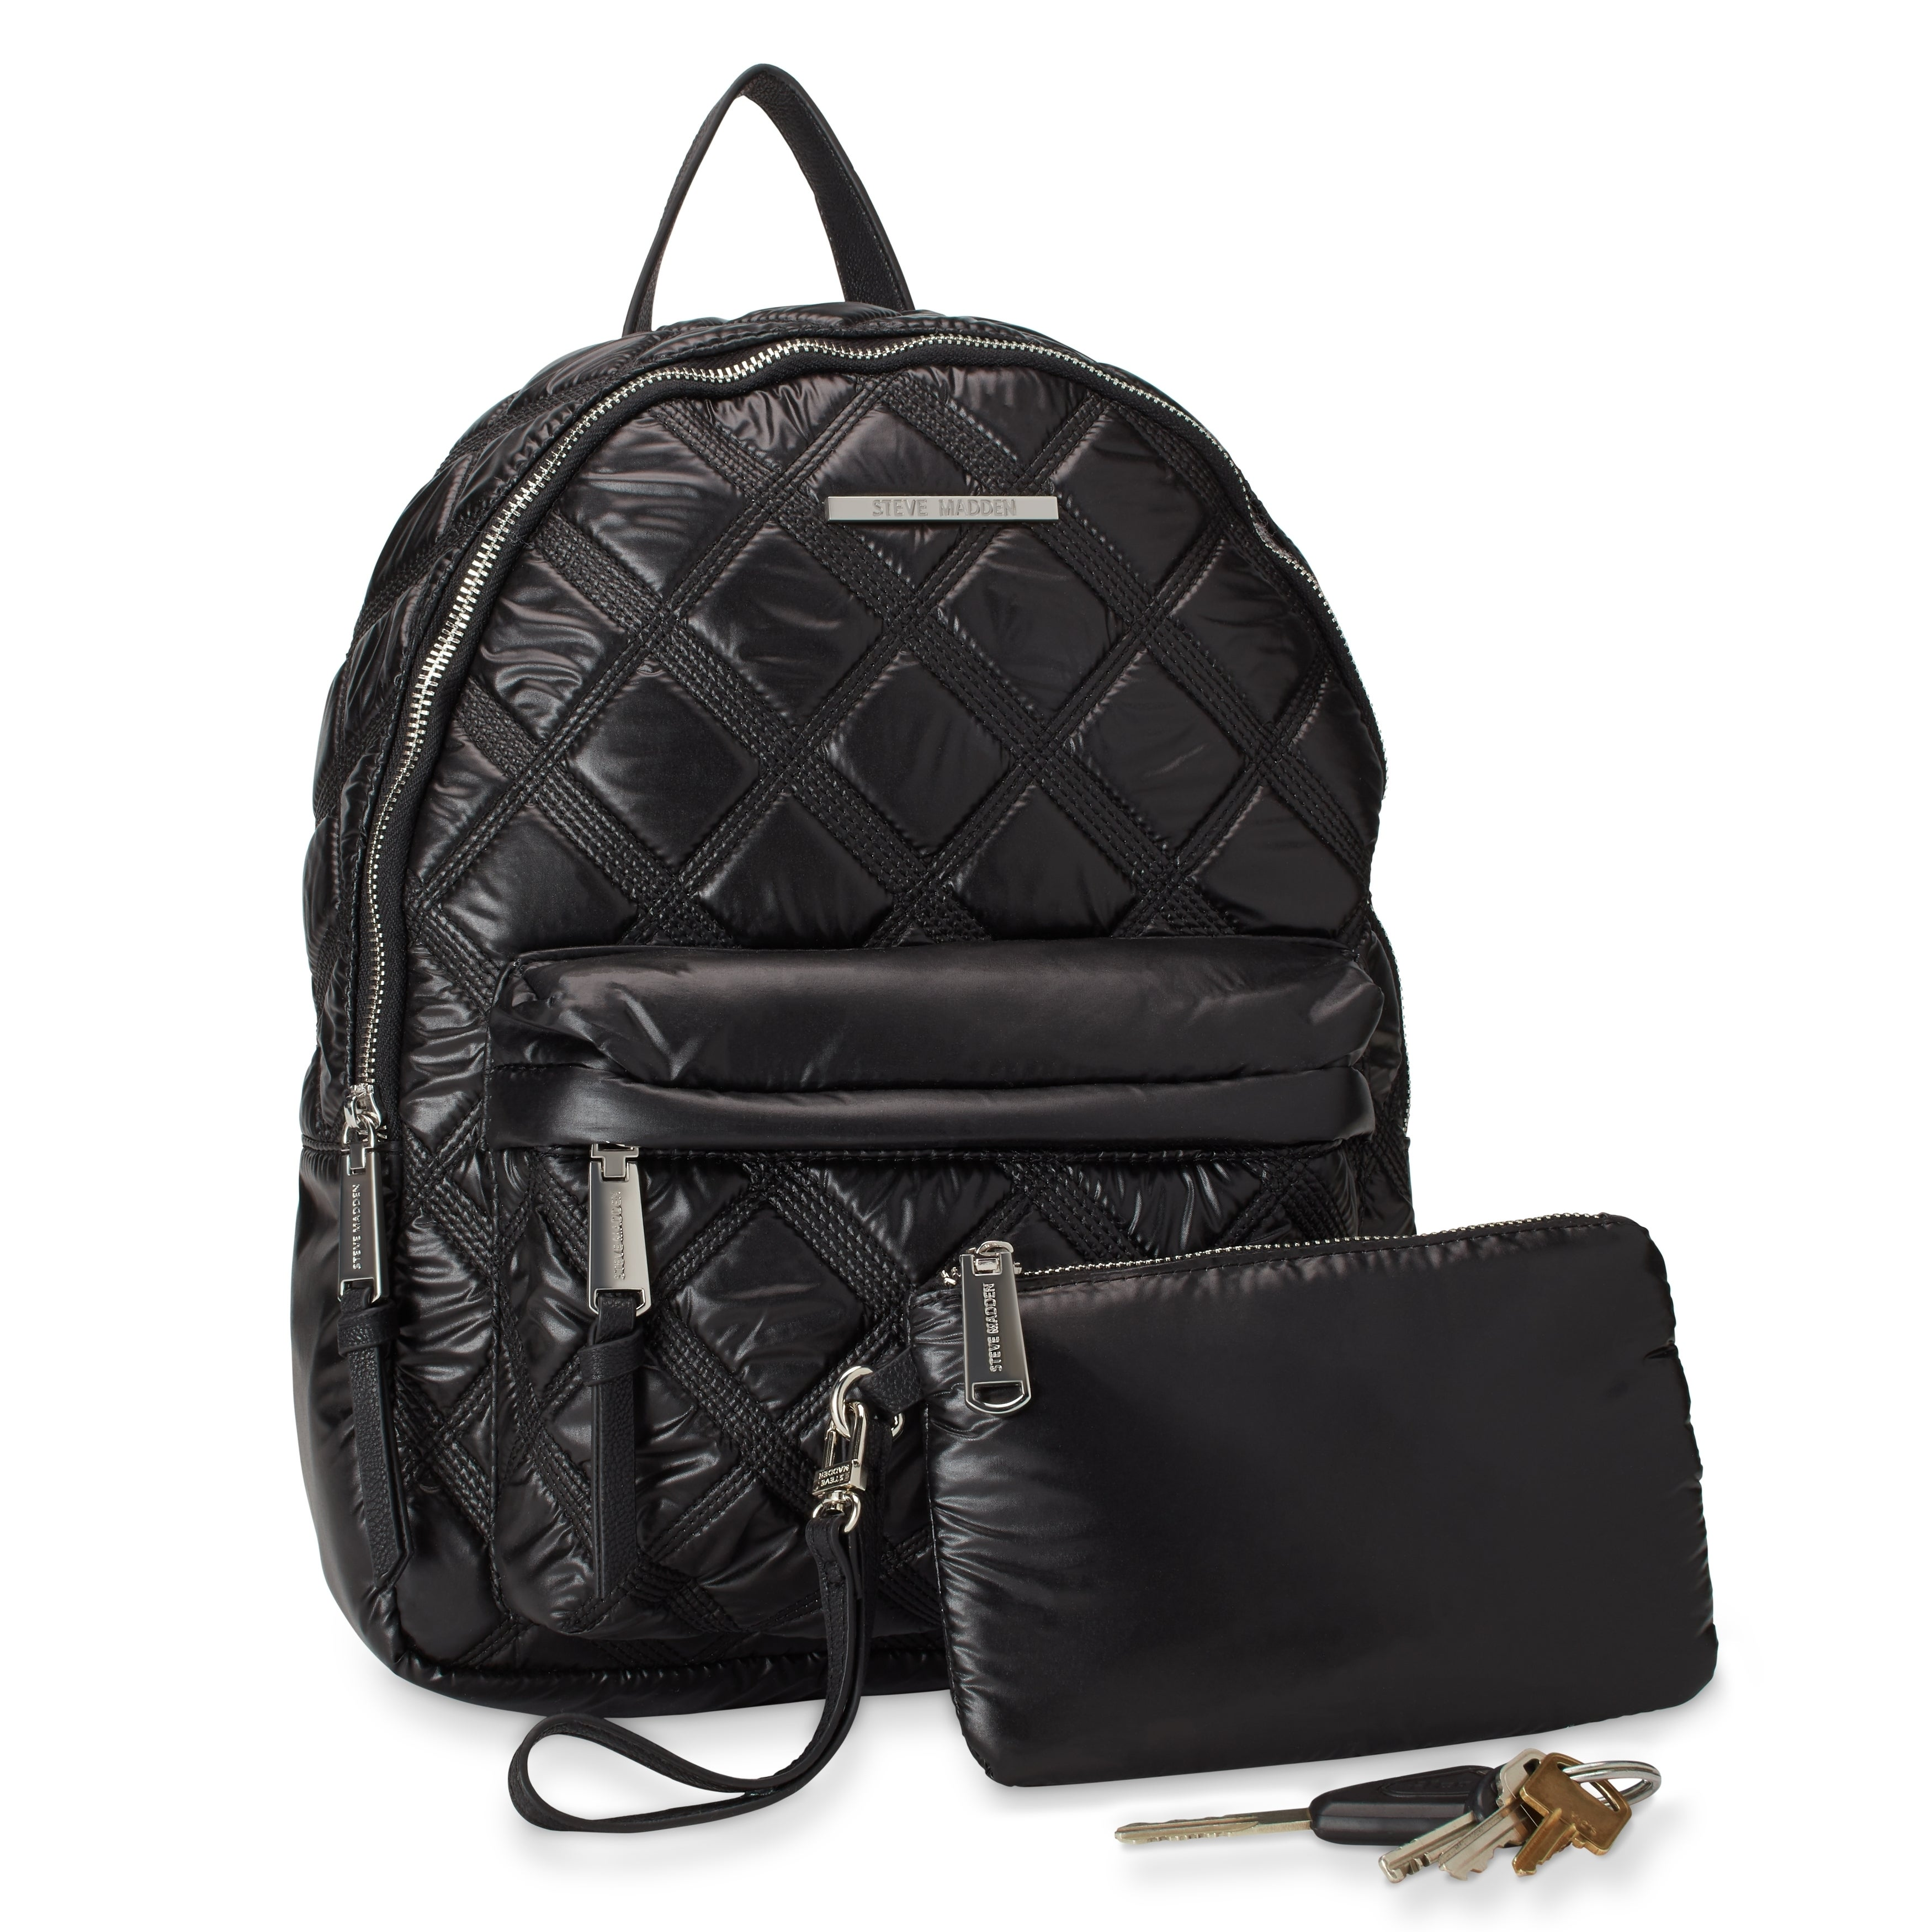 dd543a93af Shop Steve Madden BNyla Triple-Stitch Nylon Fashion Backpack - Free  Shipping On Orders Over $45 - Overstock - 18000690